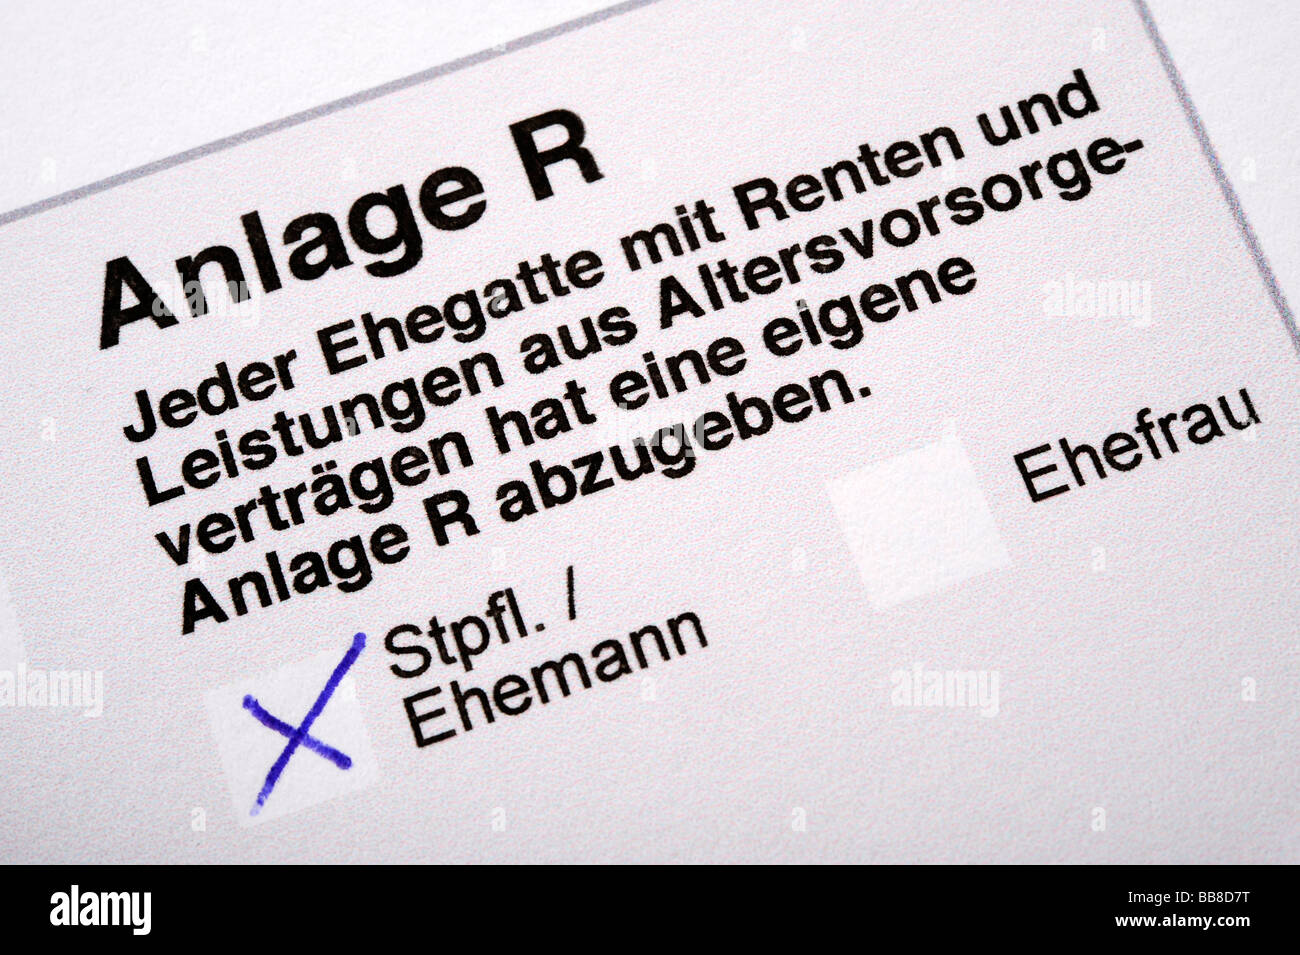 German income tax form, Anlage R for pensions and pension plan - Stock Image